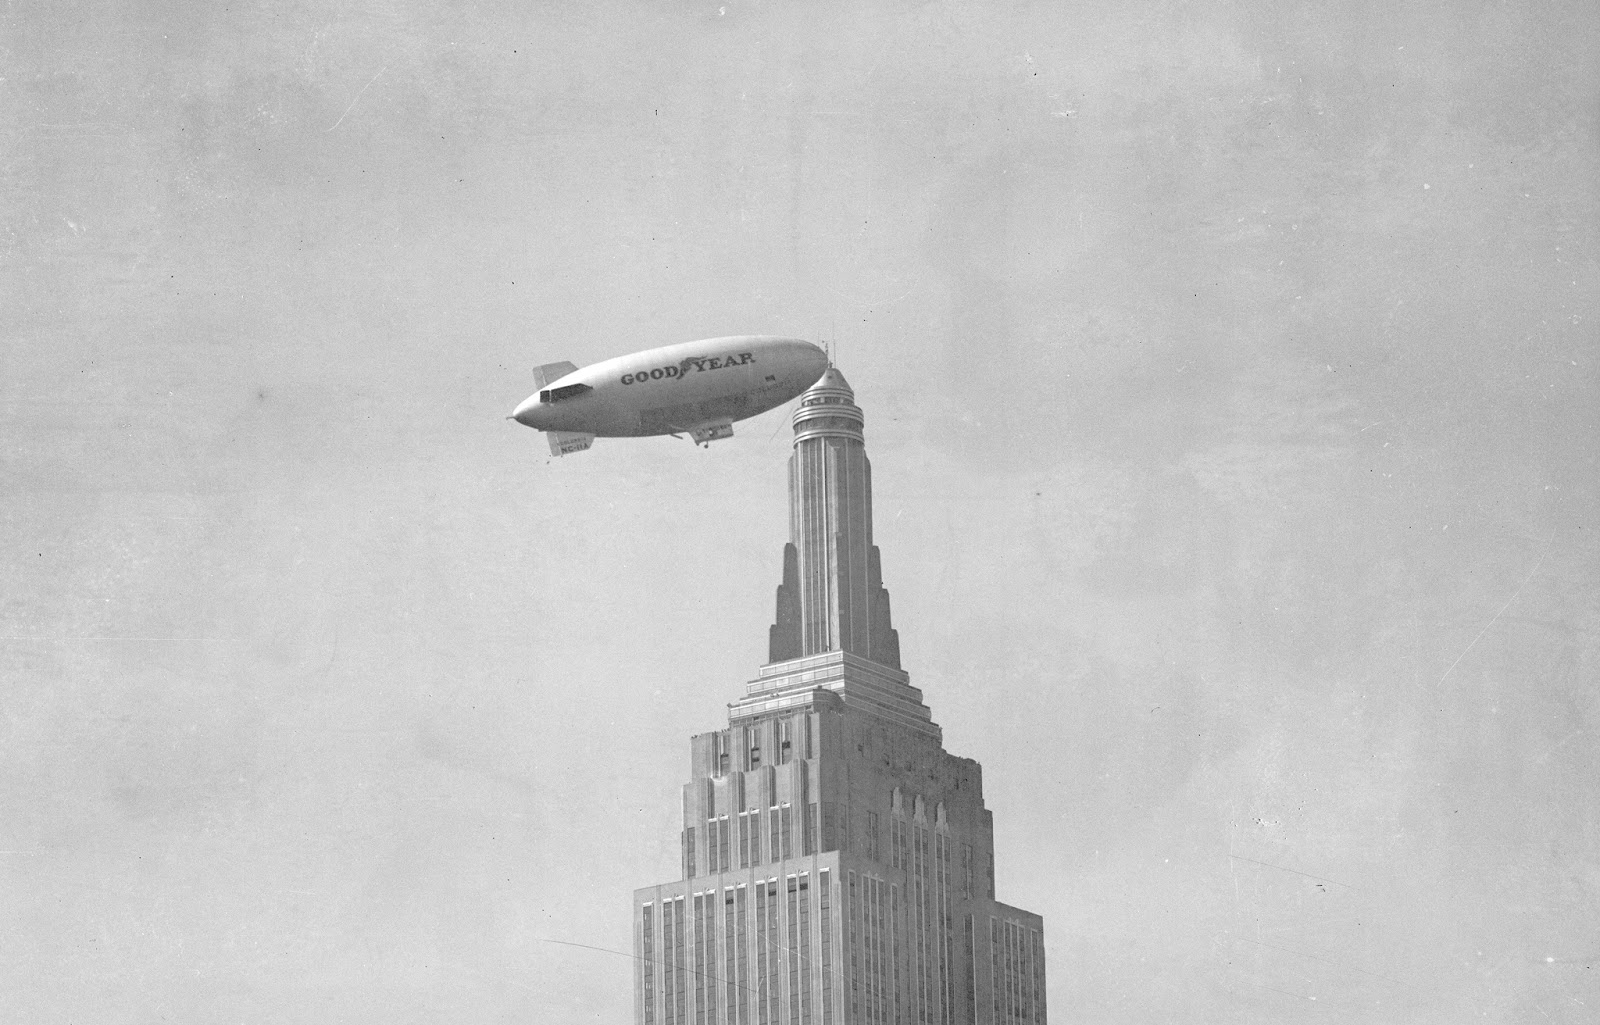 Blimp Tethered To Empire State Building